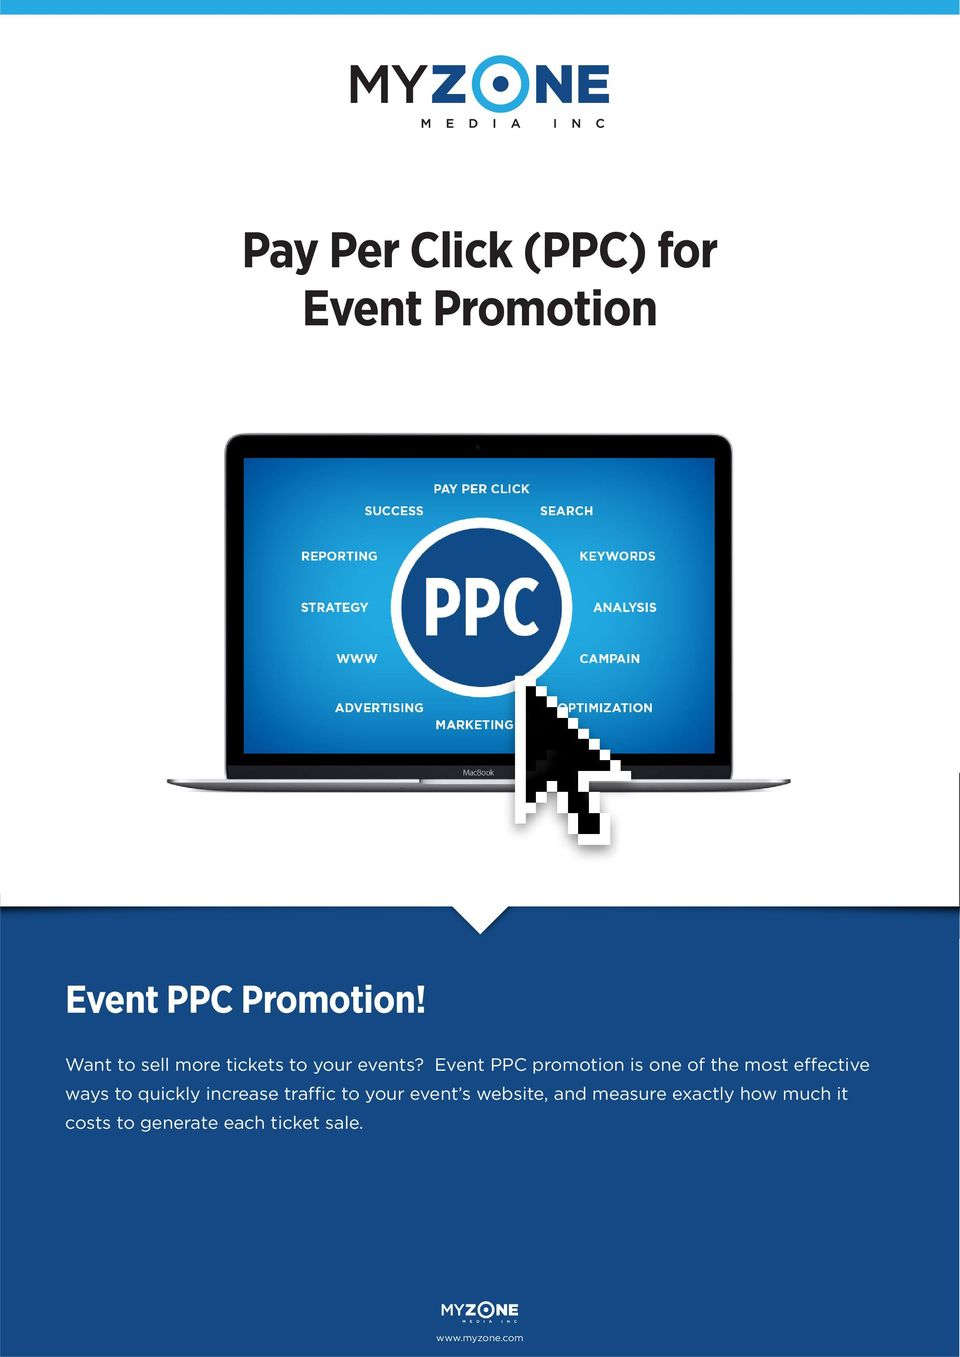 Event PPC promotion is one of the most effective ways to quickly